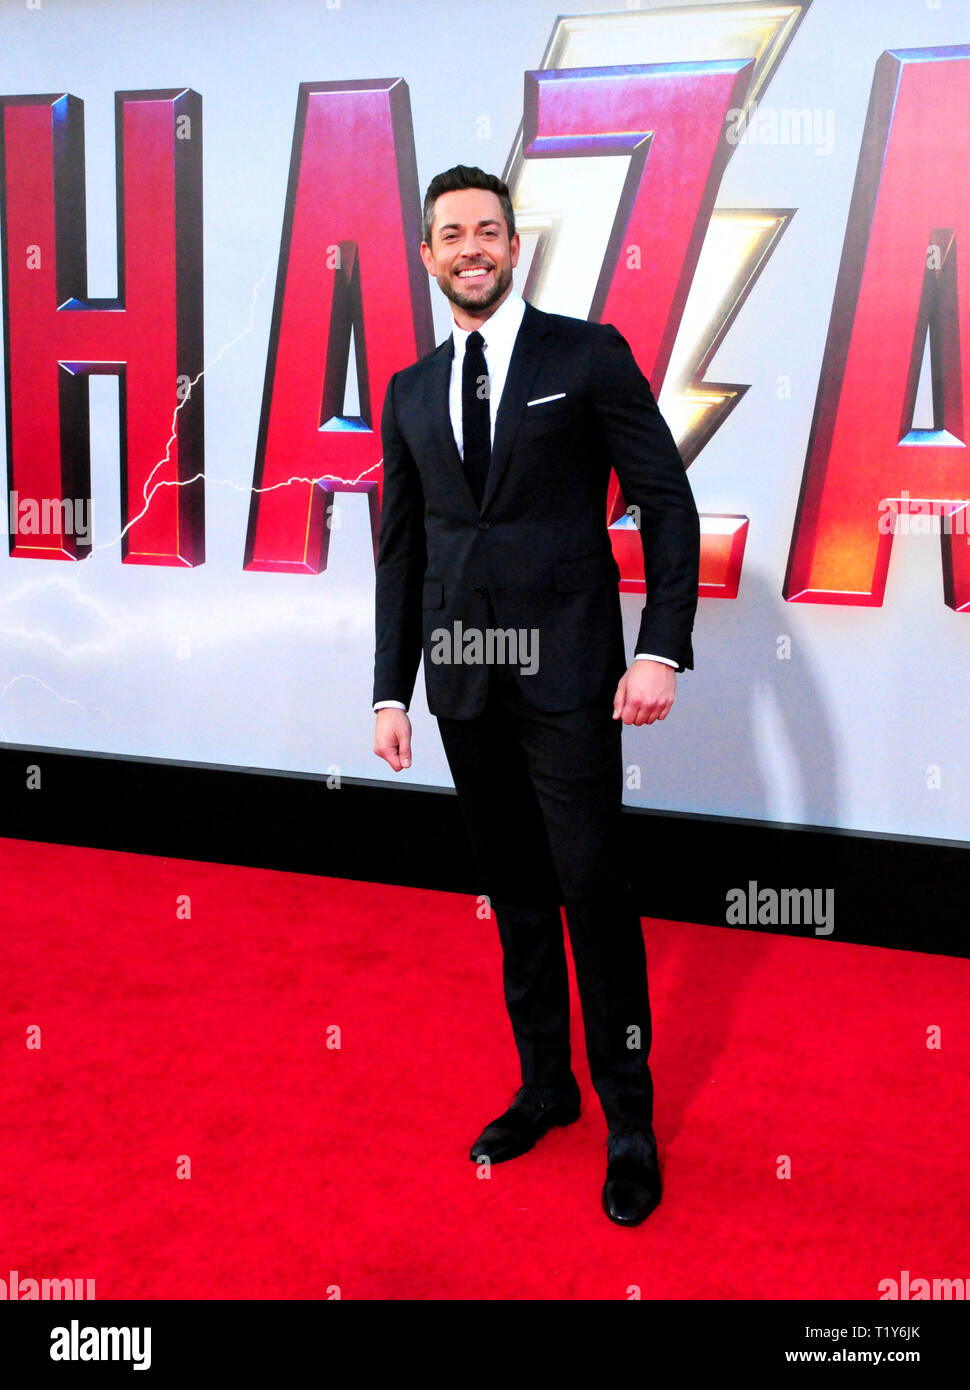 LOS ANGELES, CA - MARCH 28: Actor Zachary Levi attends the